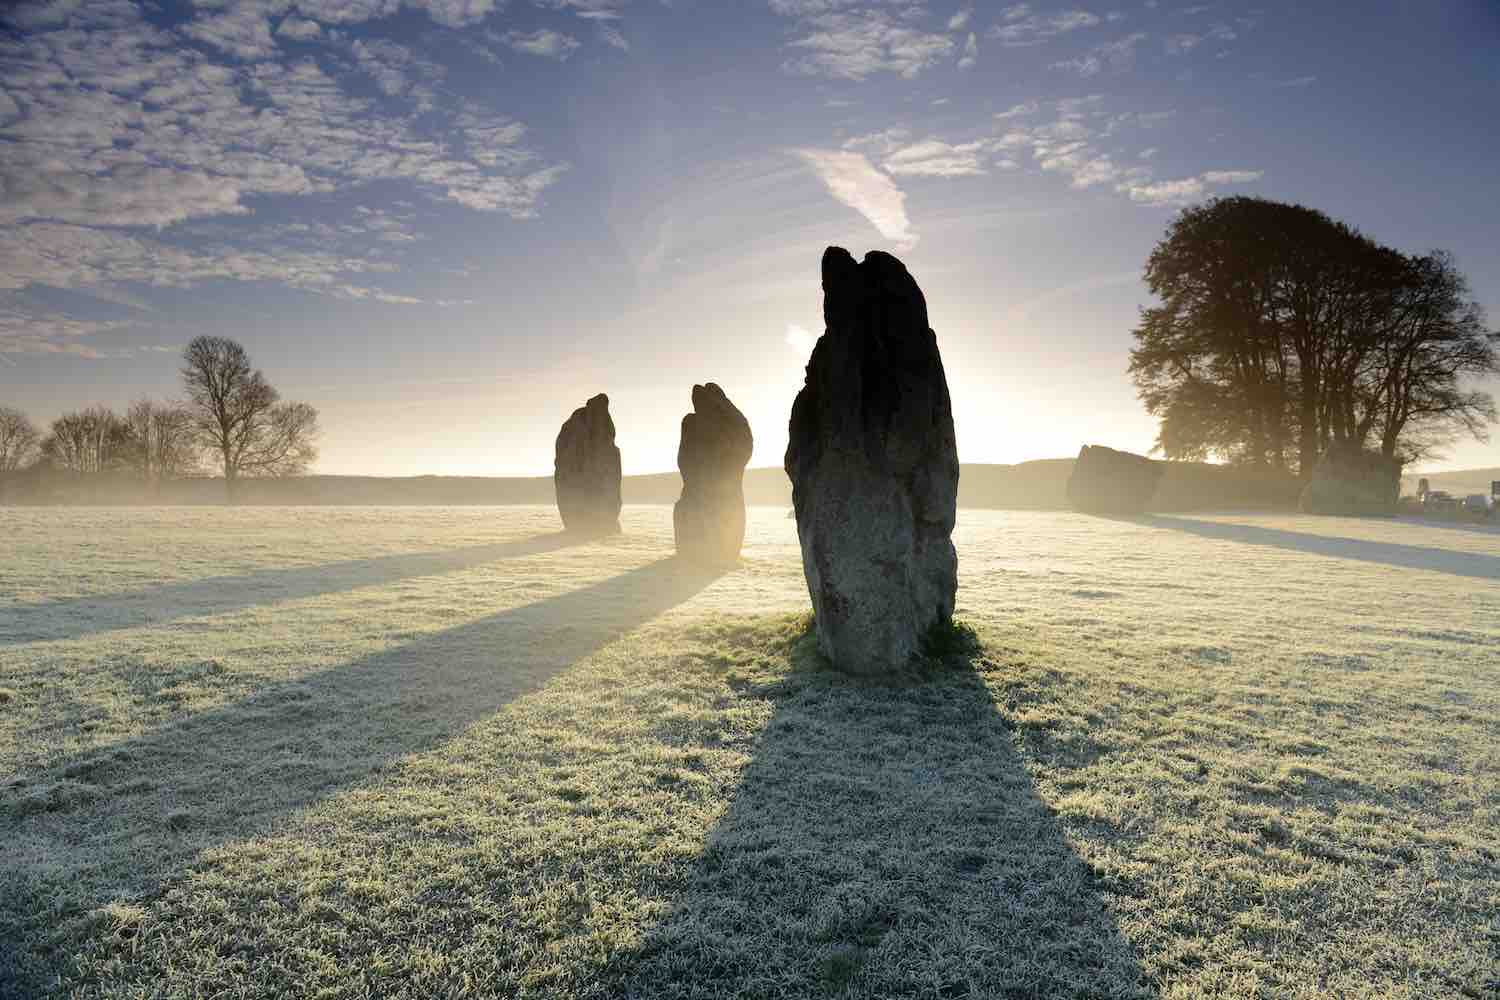 Inglaterra - The village of Avebury boasts the largest stone circle in Europe. That's one reason to visit.